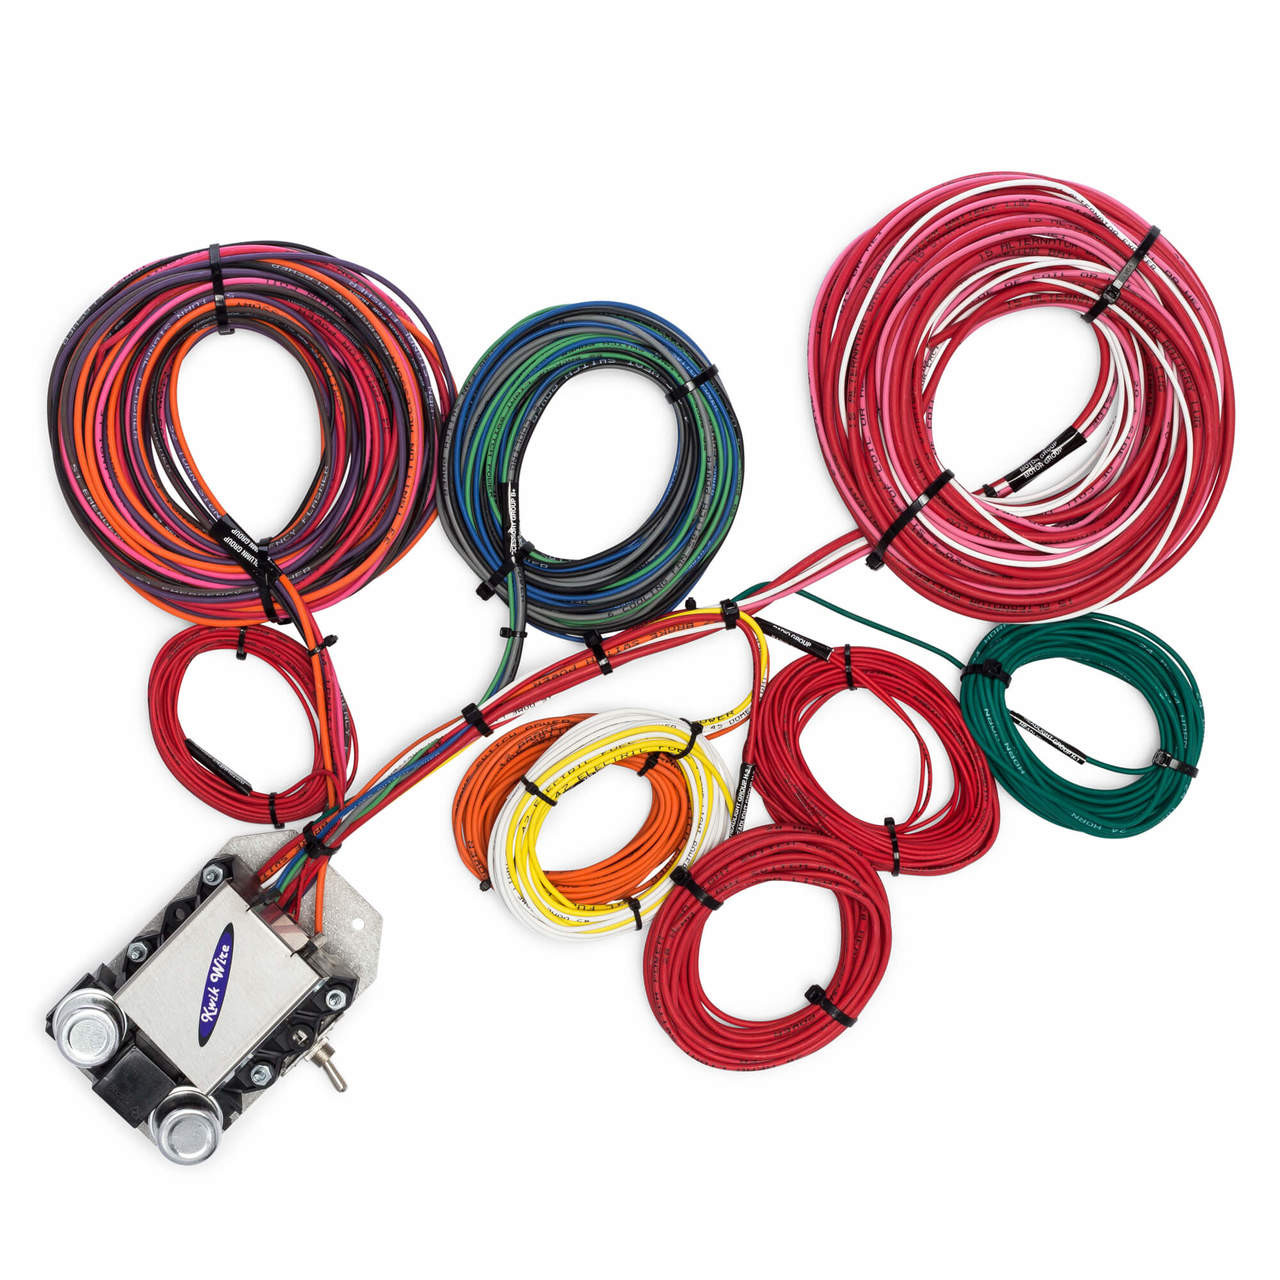 14 circuit trunk mount wire harness kwikwire electrify your ride Locomotive Wiring -Diagram 14 circuit trunk mount wire harness